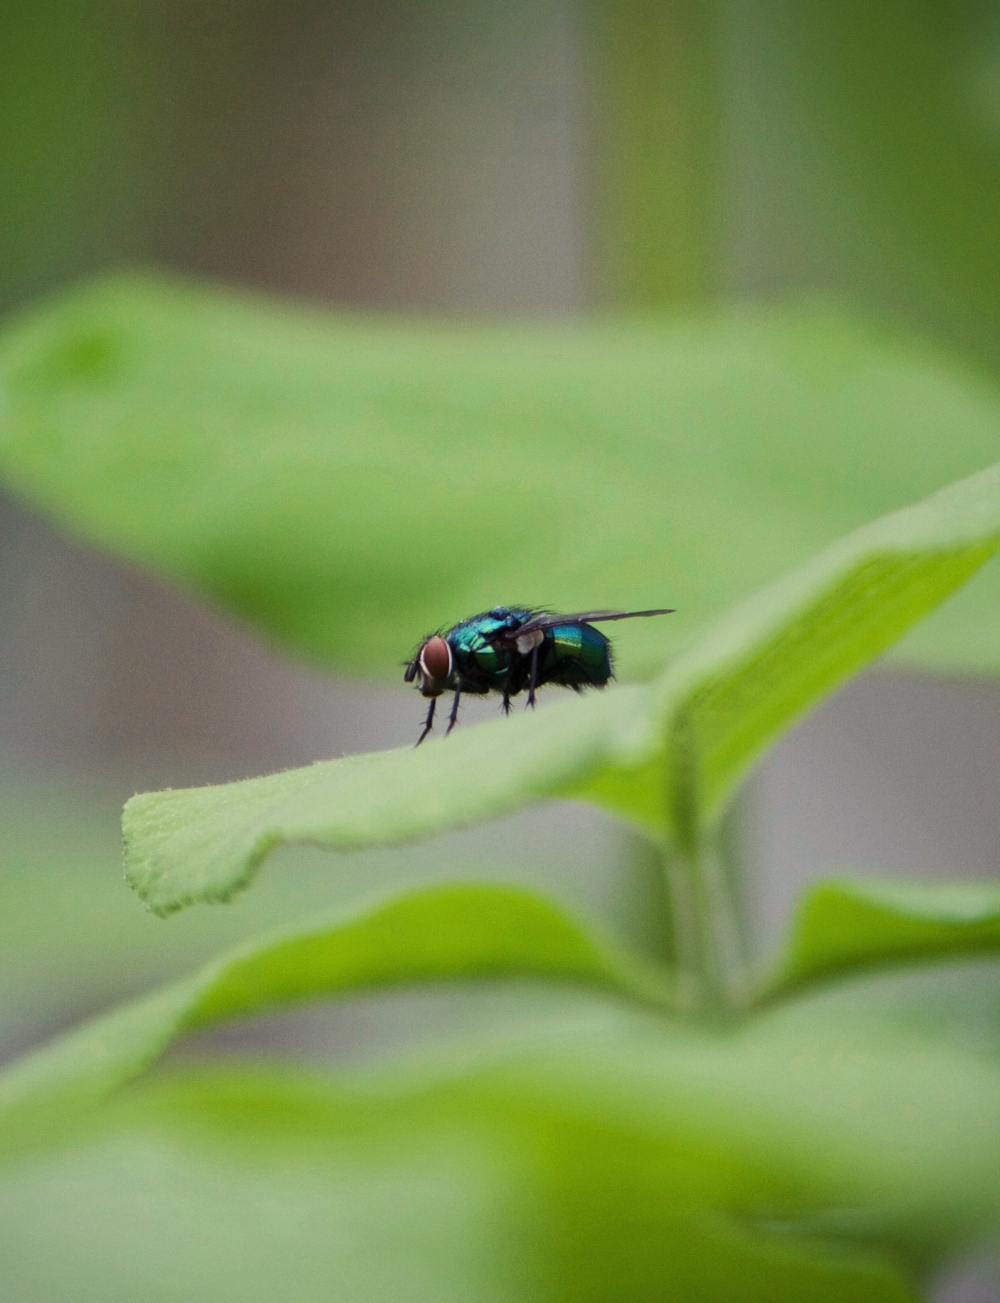 Fly-cropped